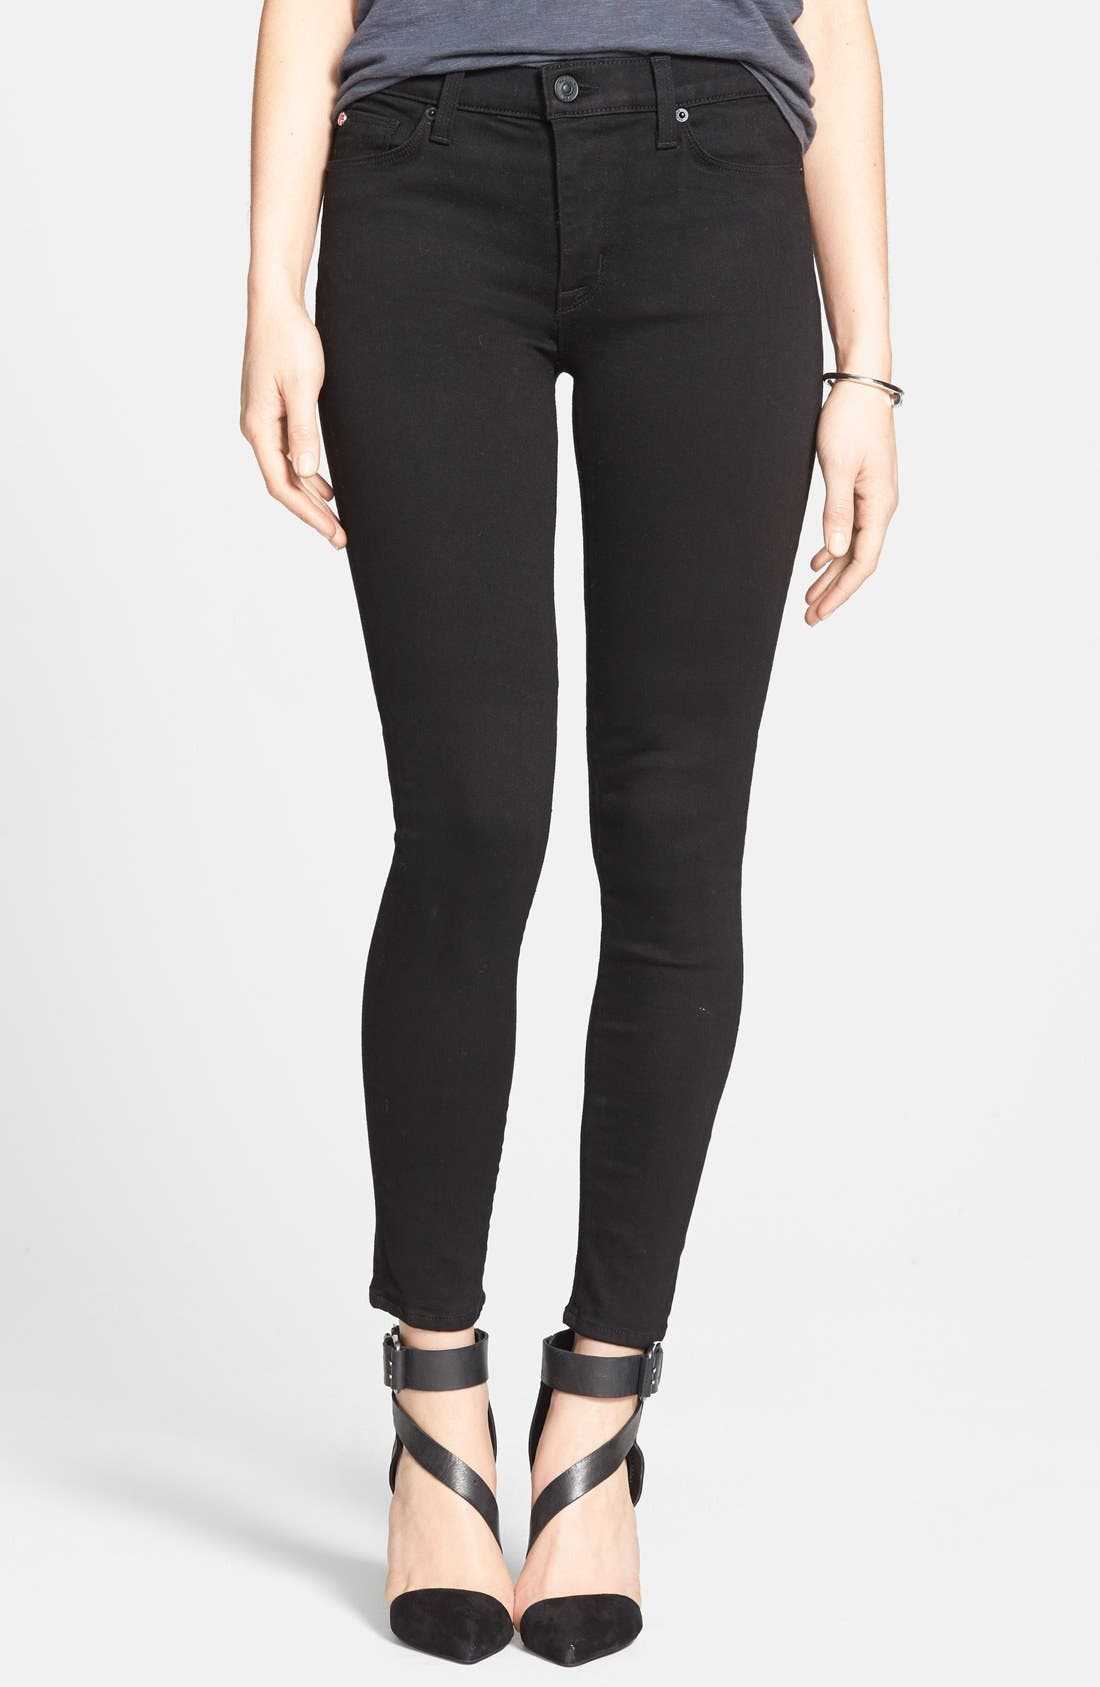 Alternate Image 1 Selected - Hudson Jeans 'Nico' Mid Rise Super Skinny Jeans (Black)